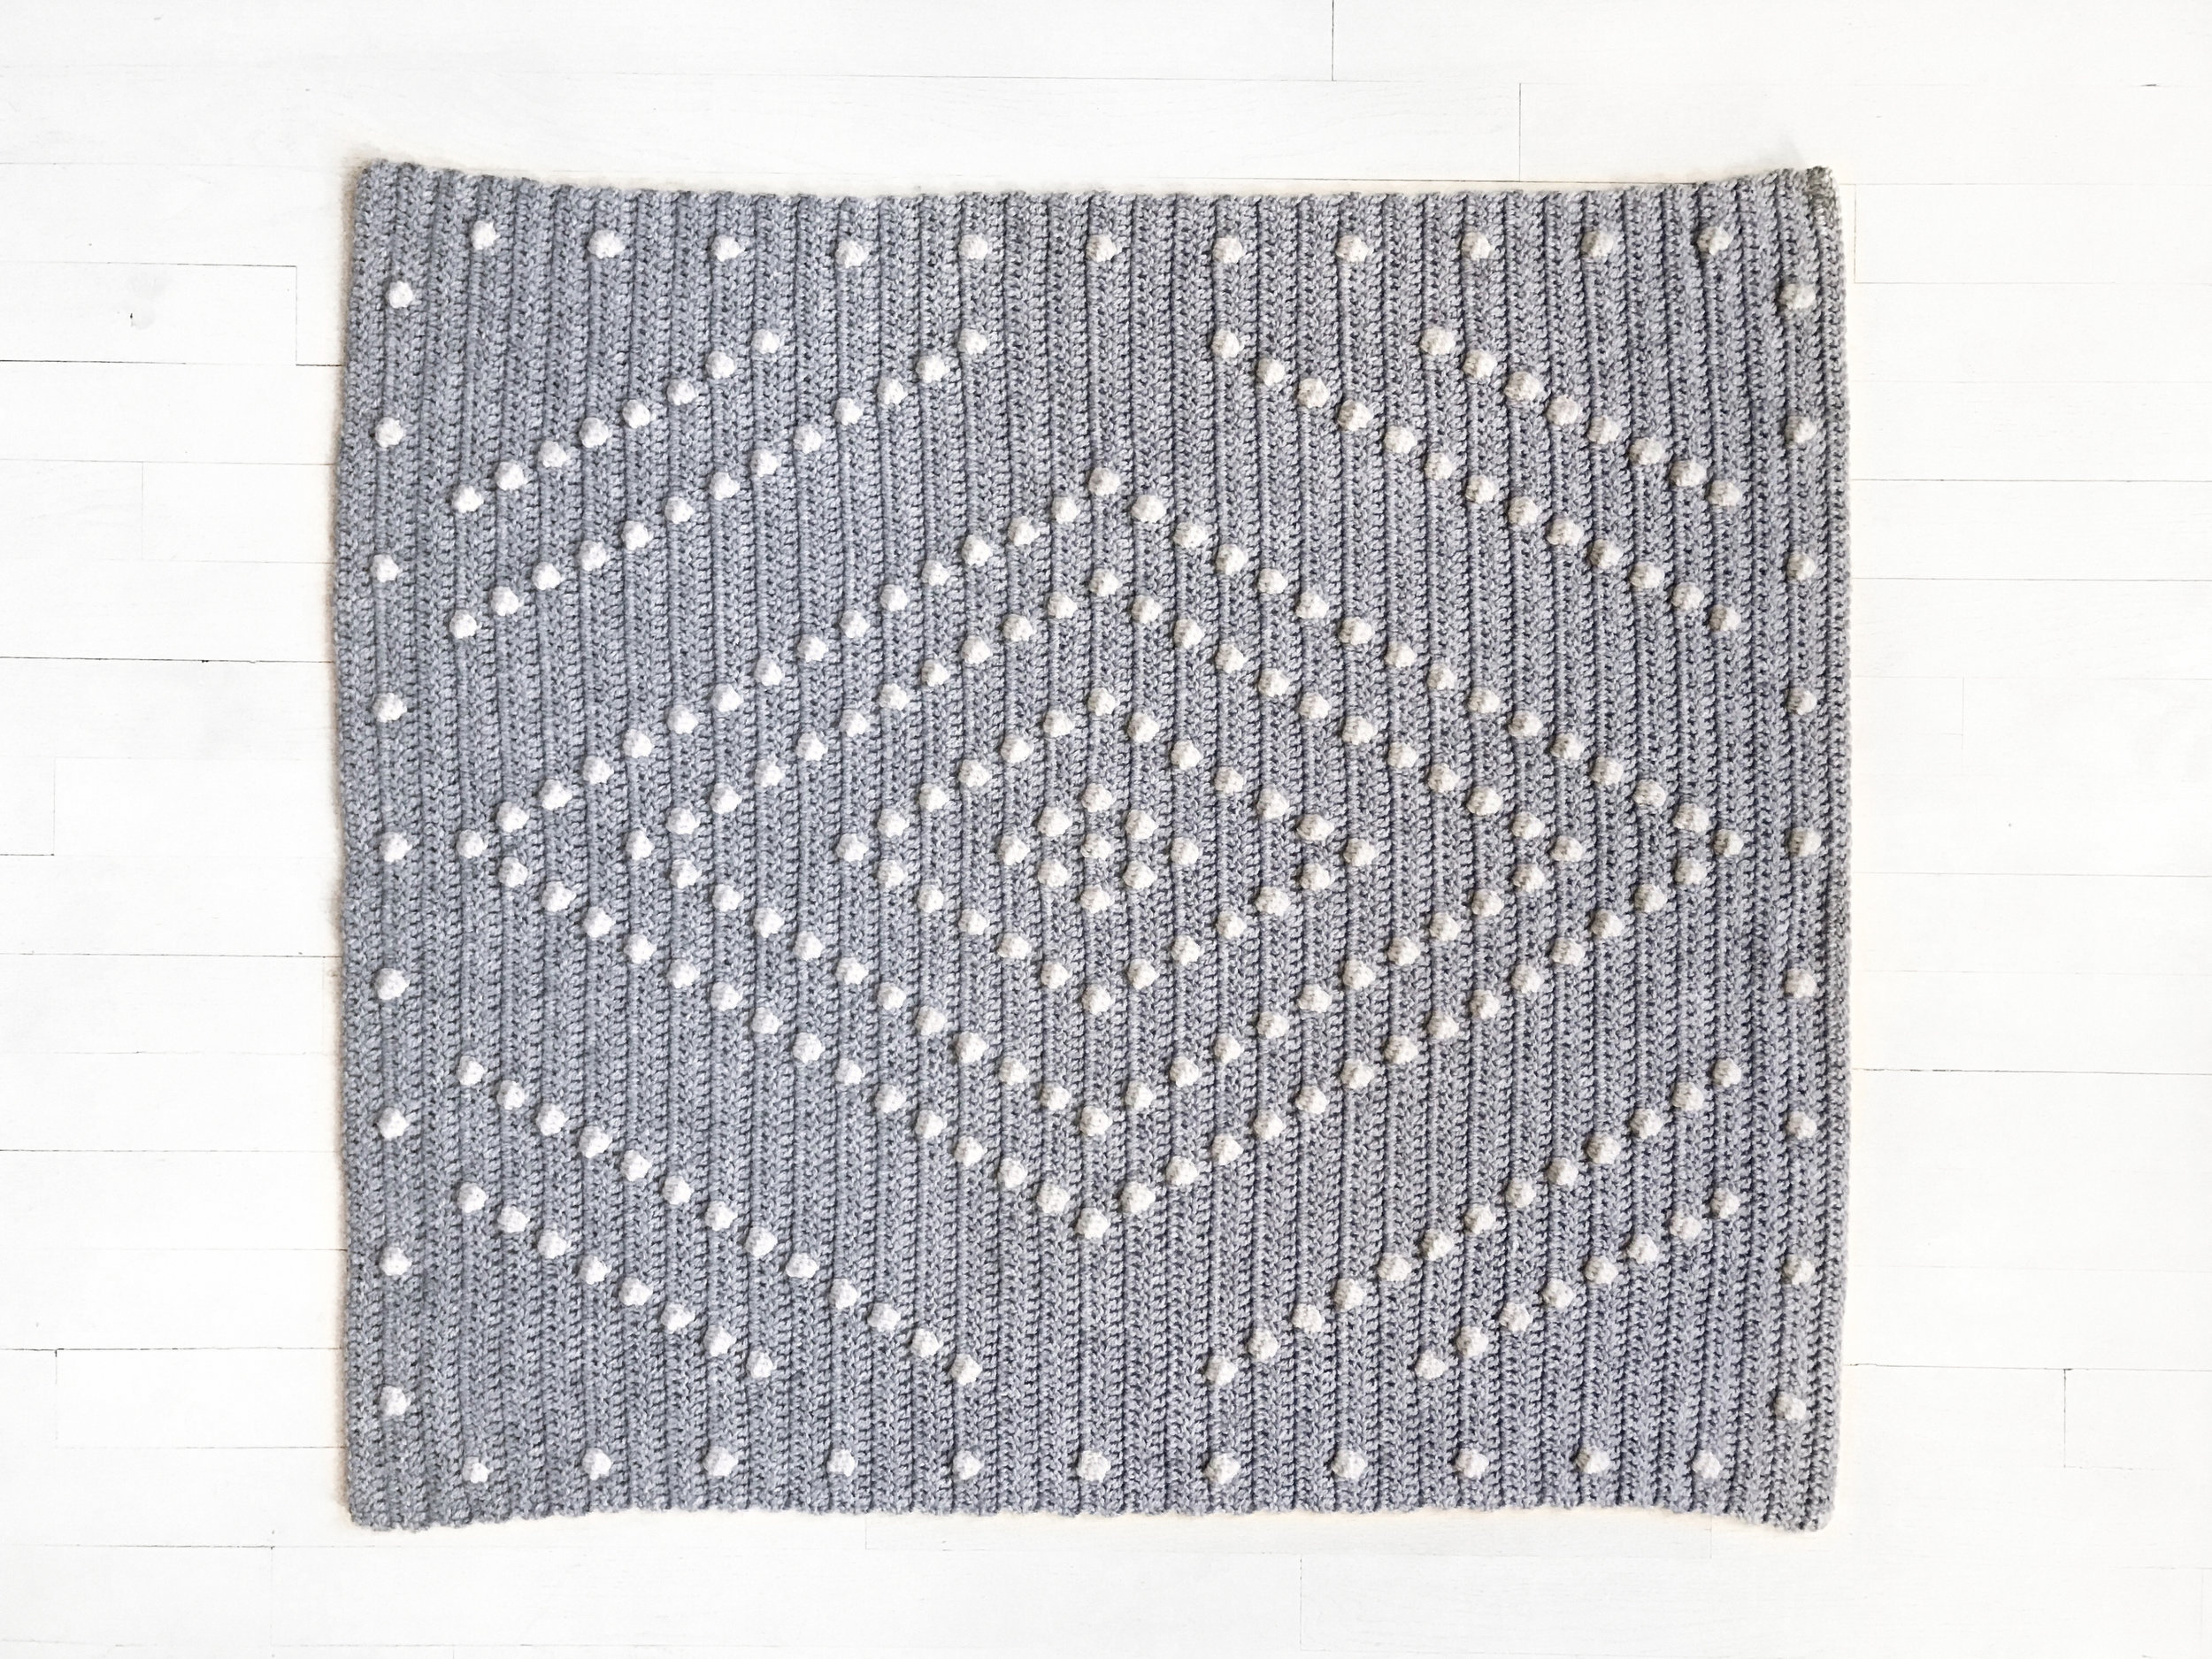 Theory of Light Blanket Pattern by Two of Wands